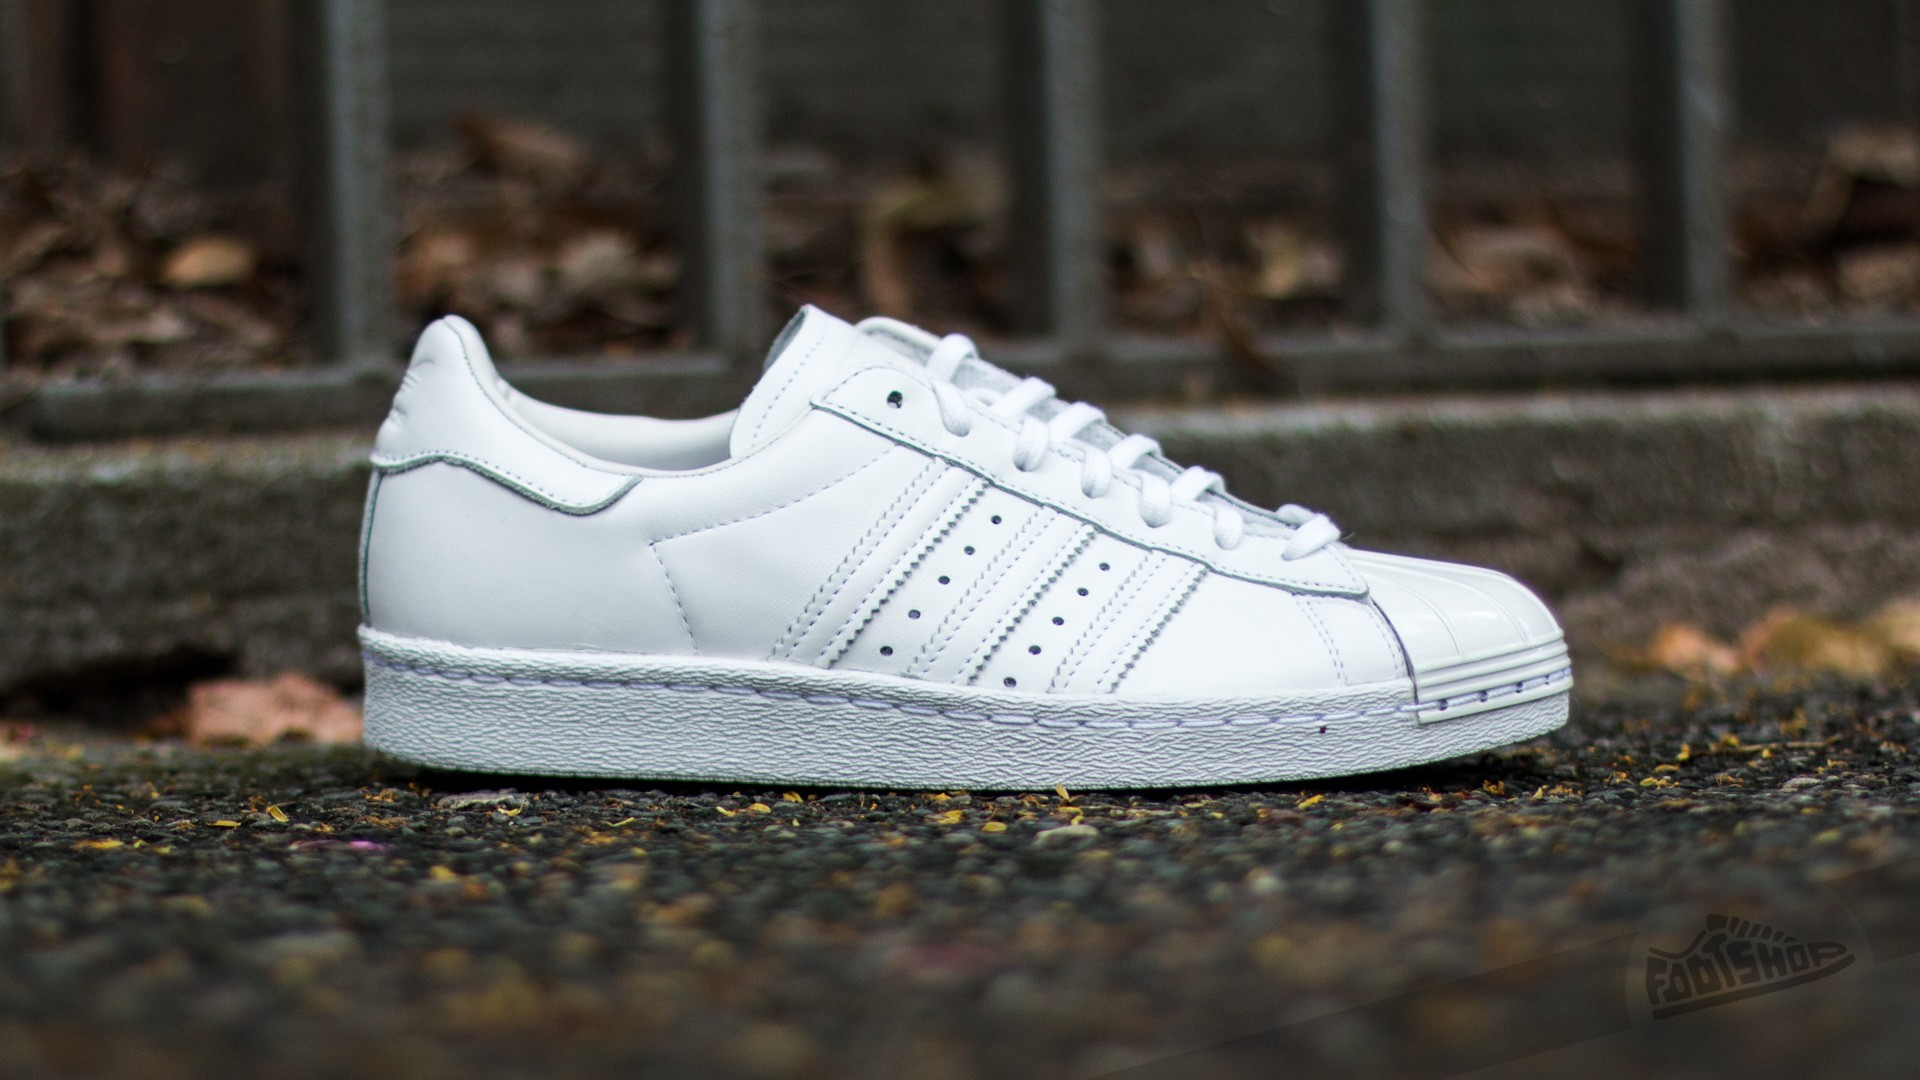 new concept deea7 7b36a adidas Superstar 80s Metal Toe W Ftw White/ Ftw White/ Core ...